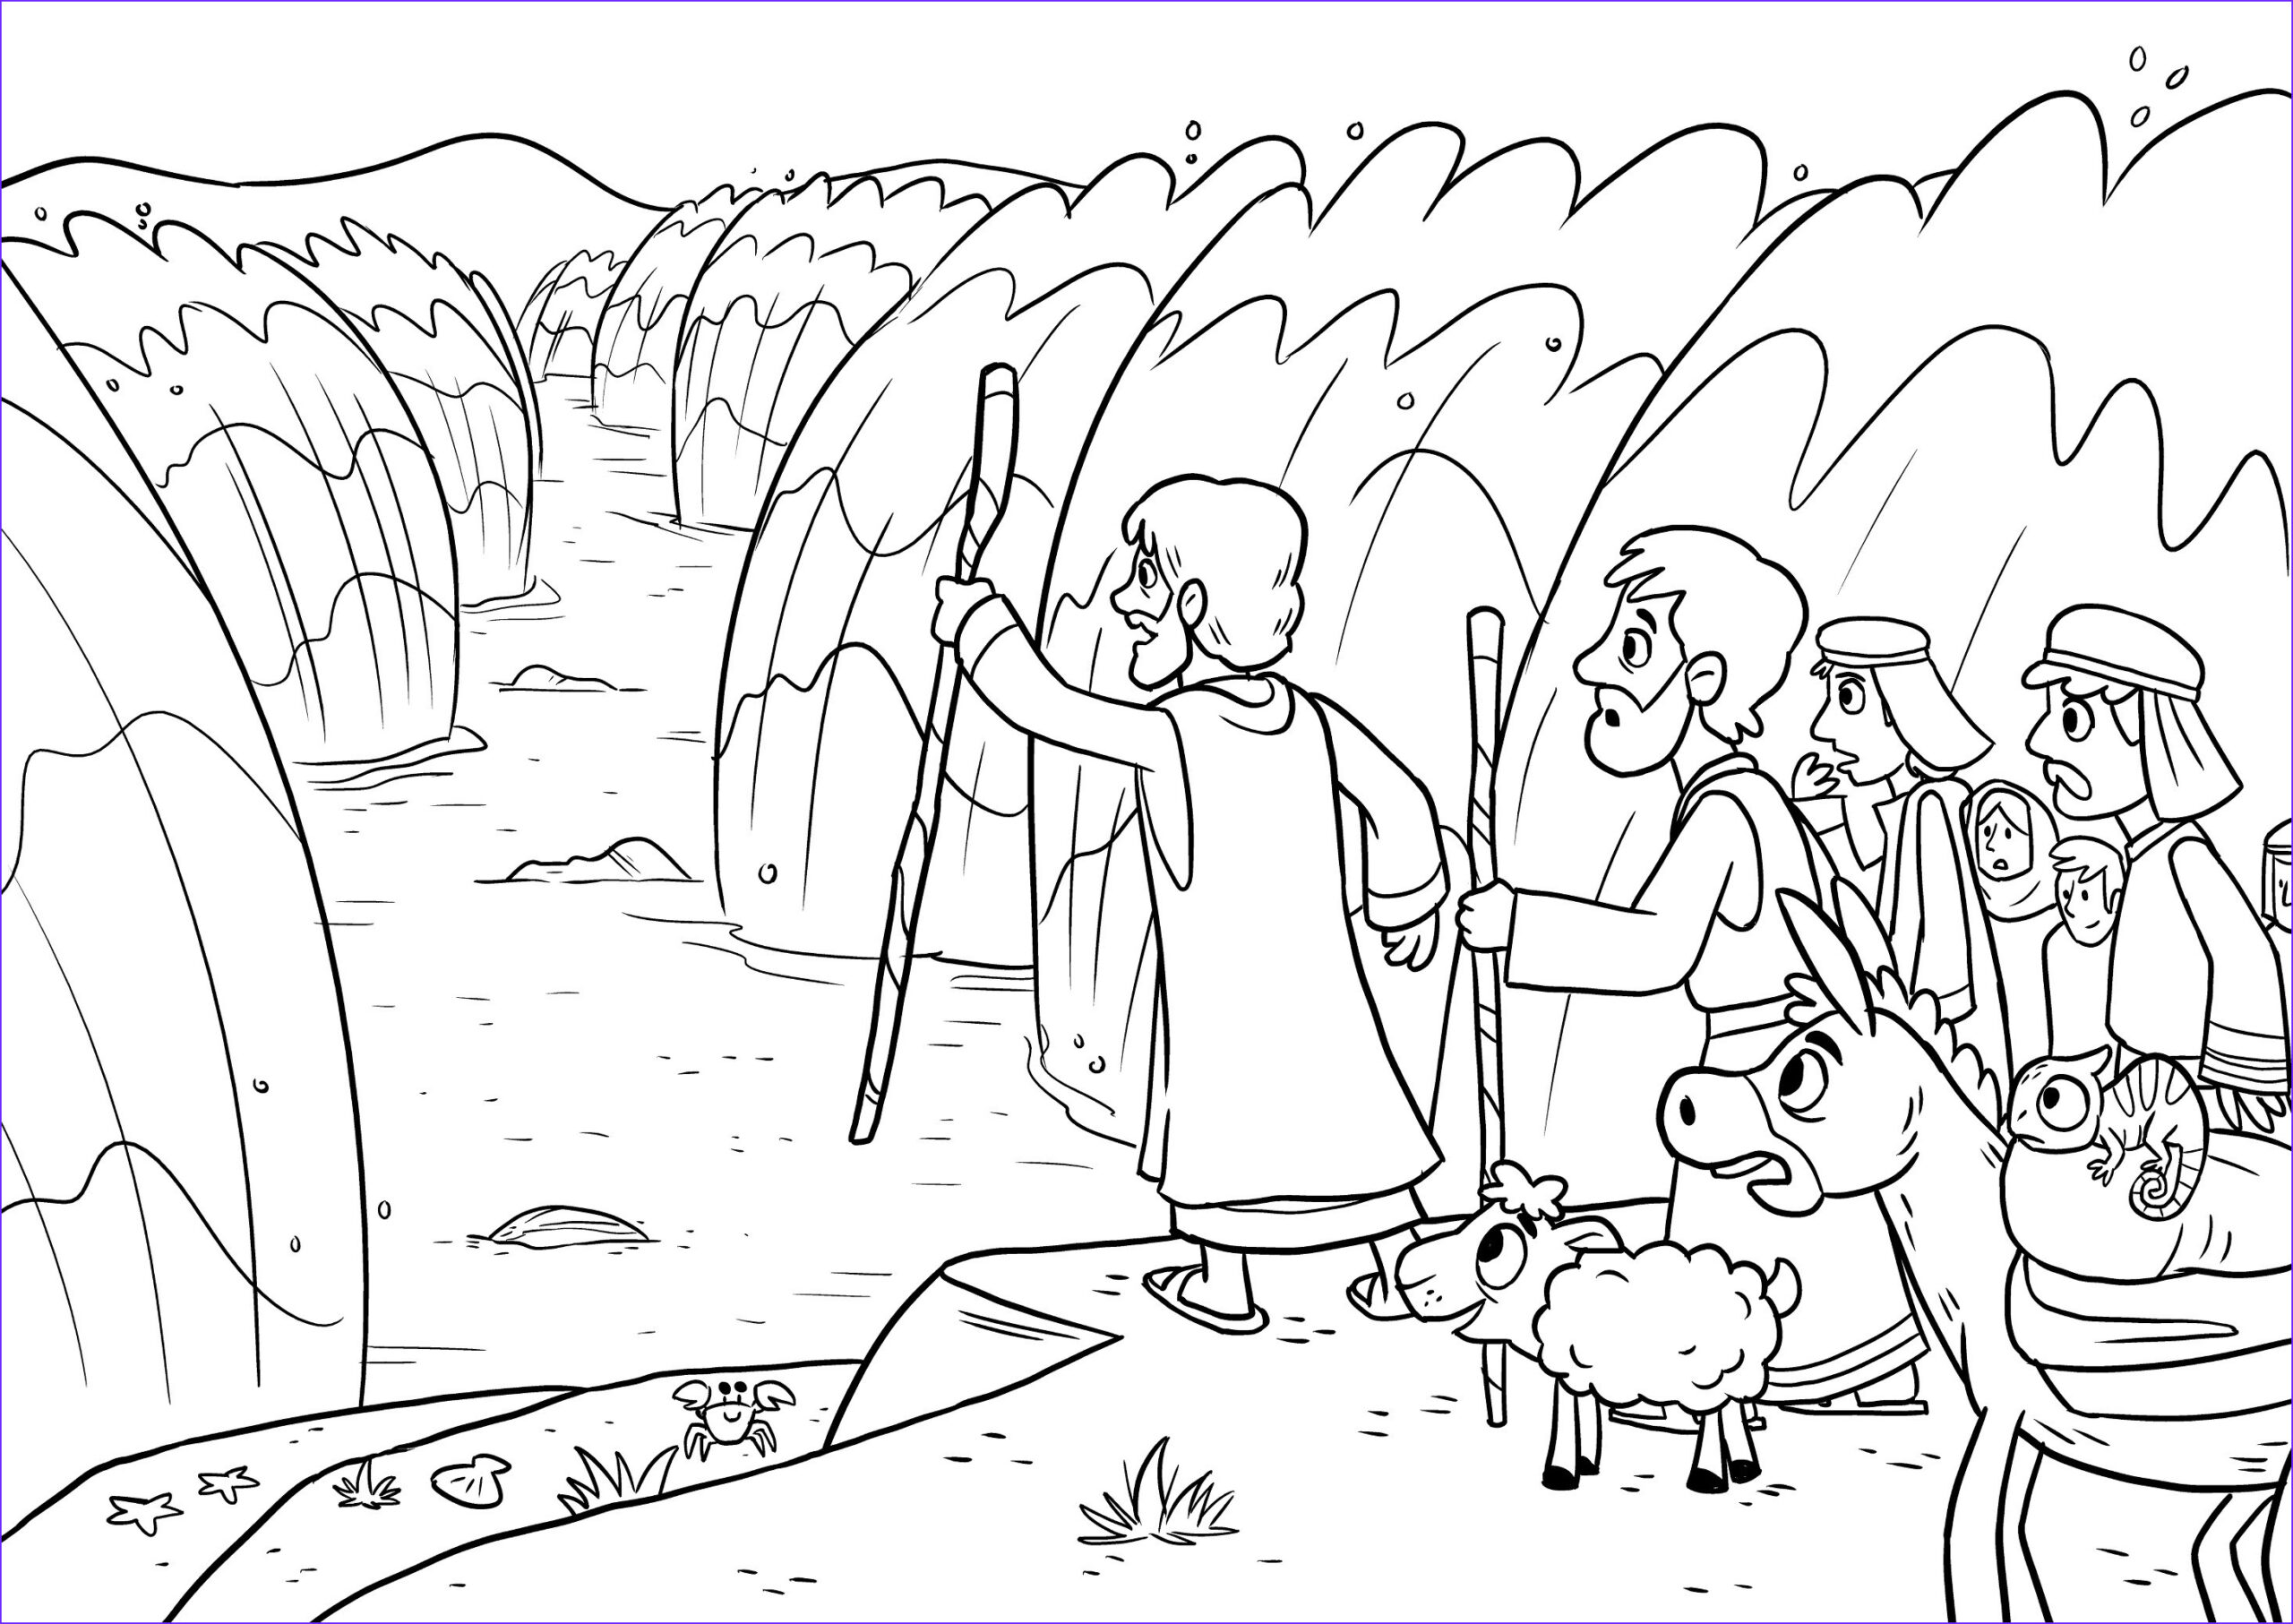 parting red sea coloring page new moses 10 plagues egypt and crossing the red sea bible craft in